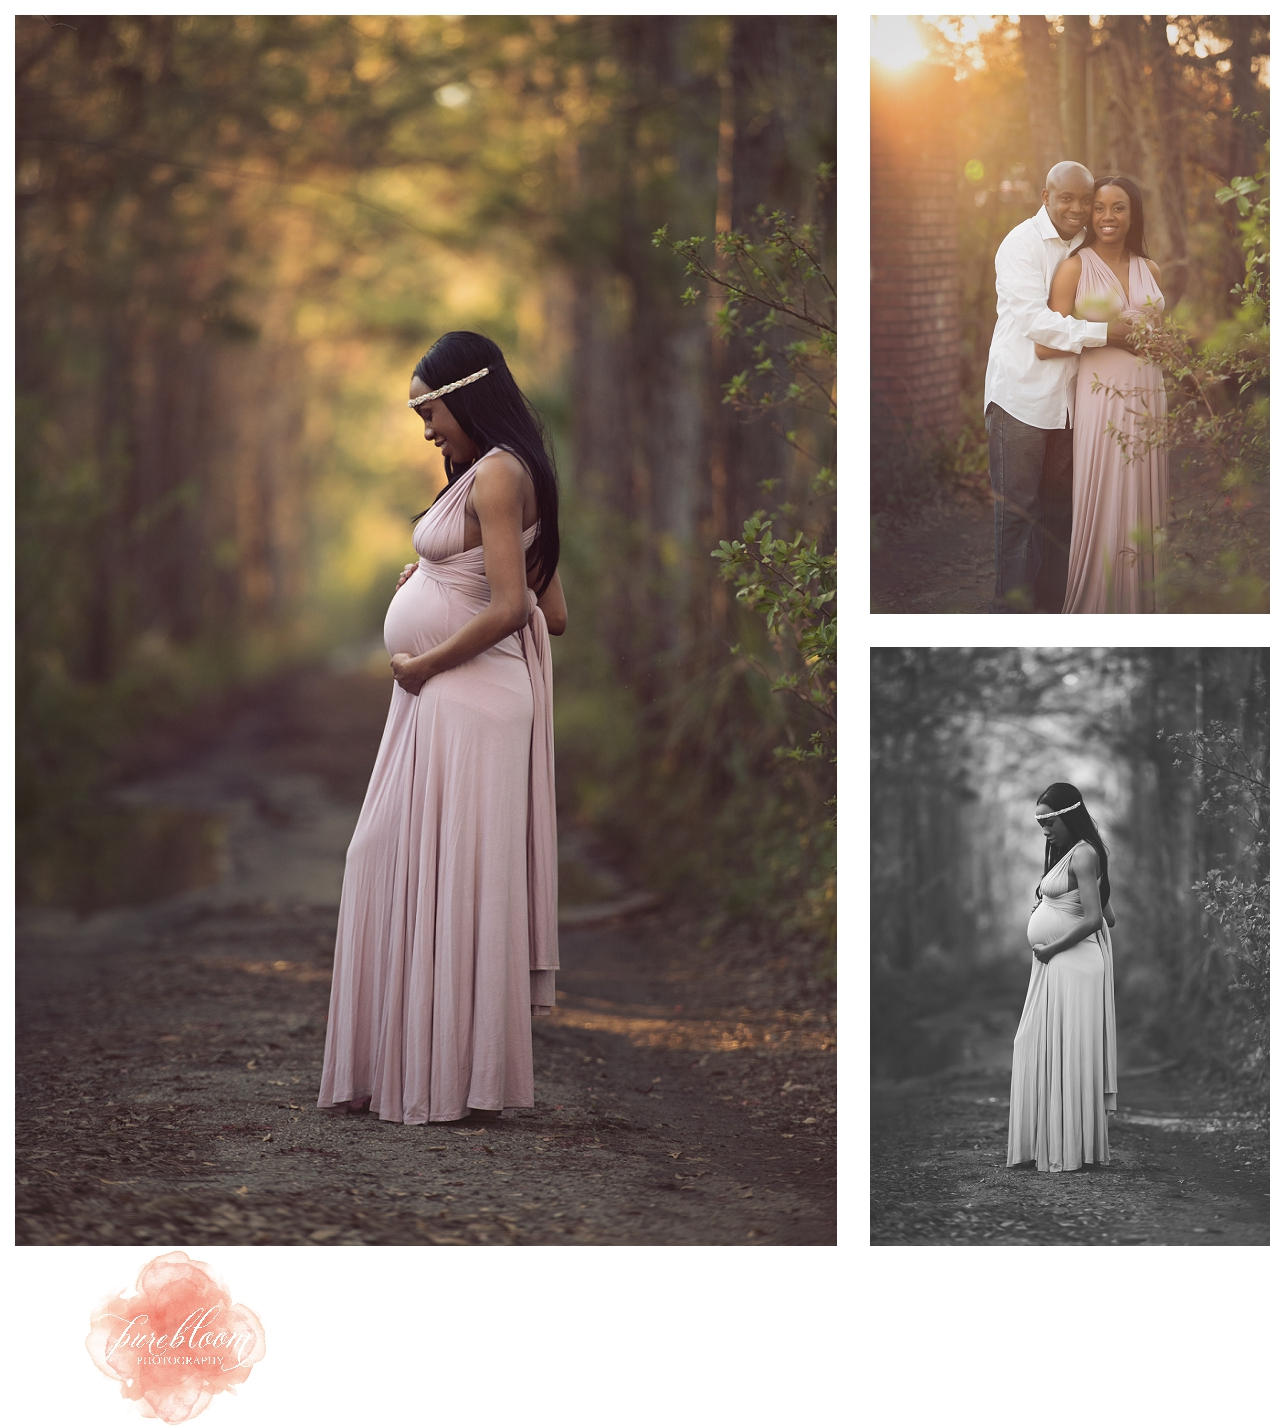 Tampa-outdoor-maternity-photographer- (8).jpg